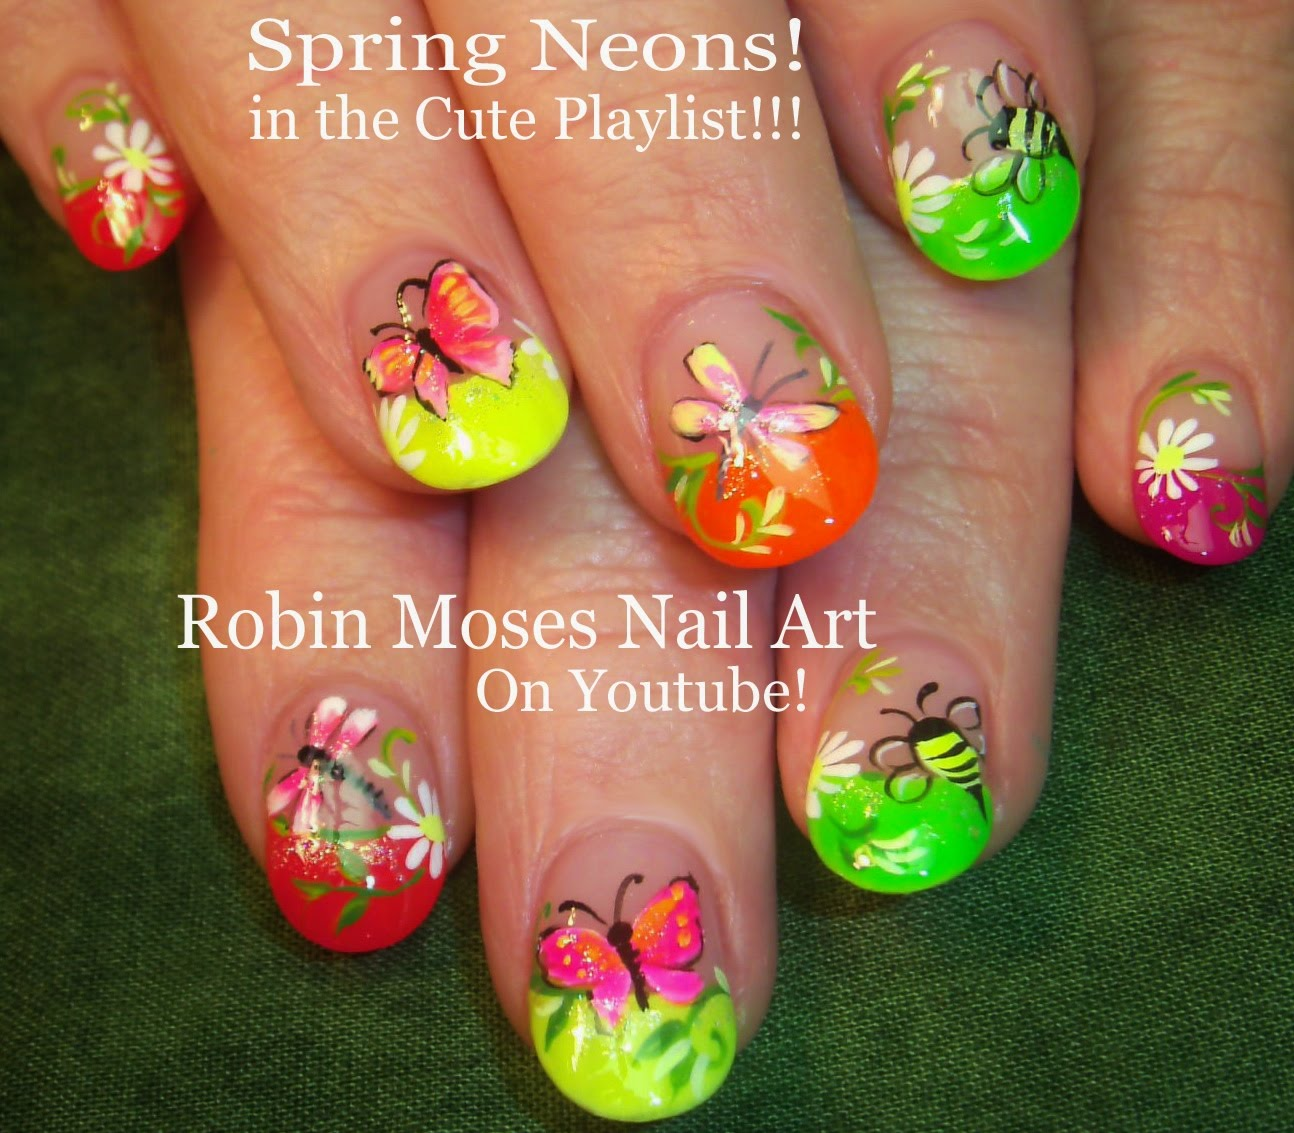 This Awesome Neon Nail Design IS A Great Way To Test Your Nail Art ...